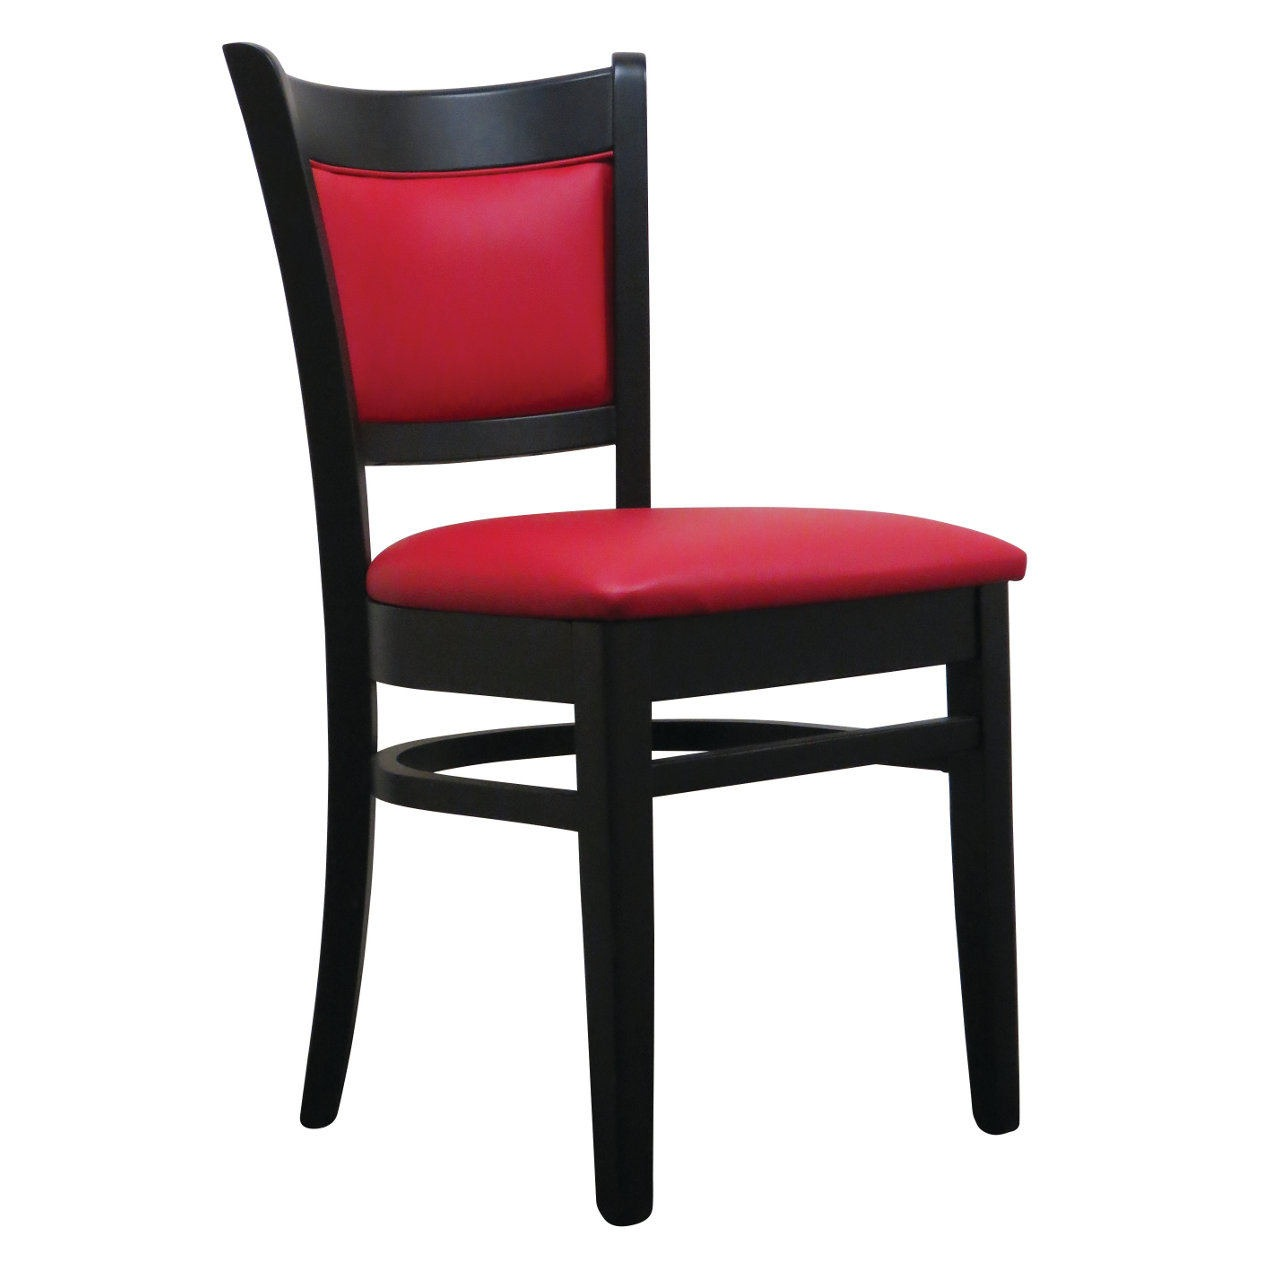 A77 side chair